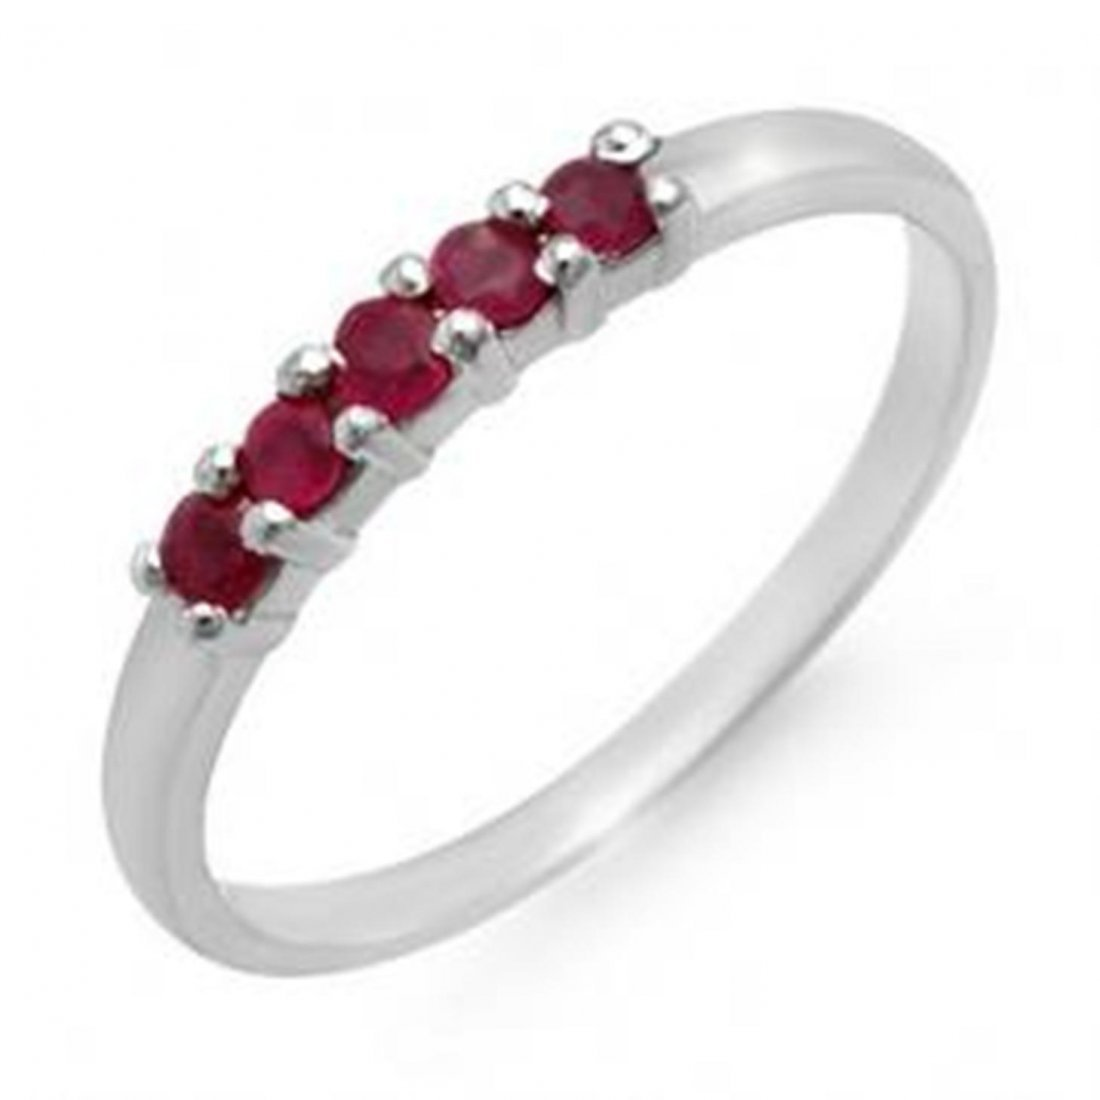 1A: 0.25 ctw Ruby Ladies Ring 10K